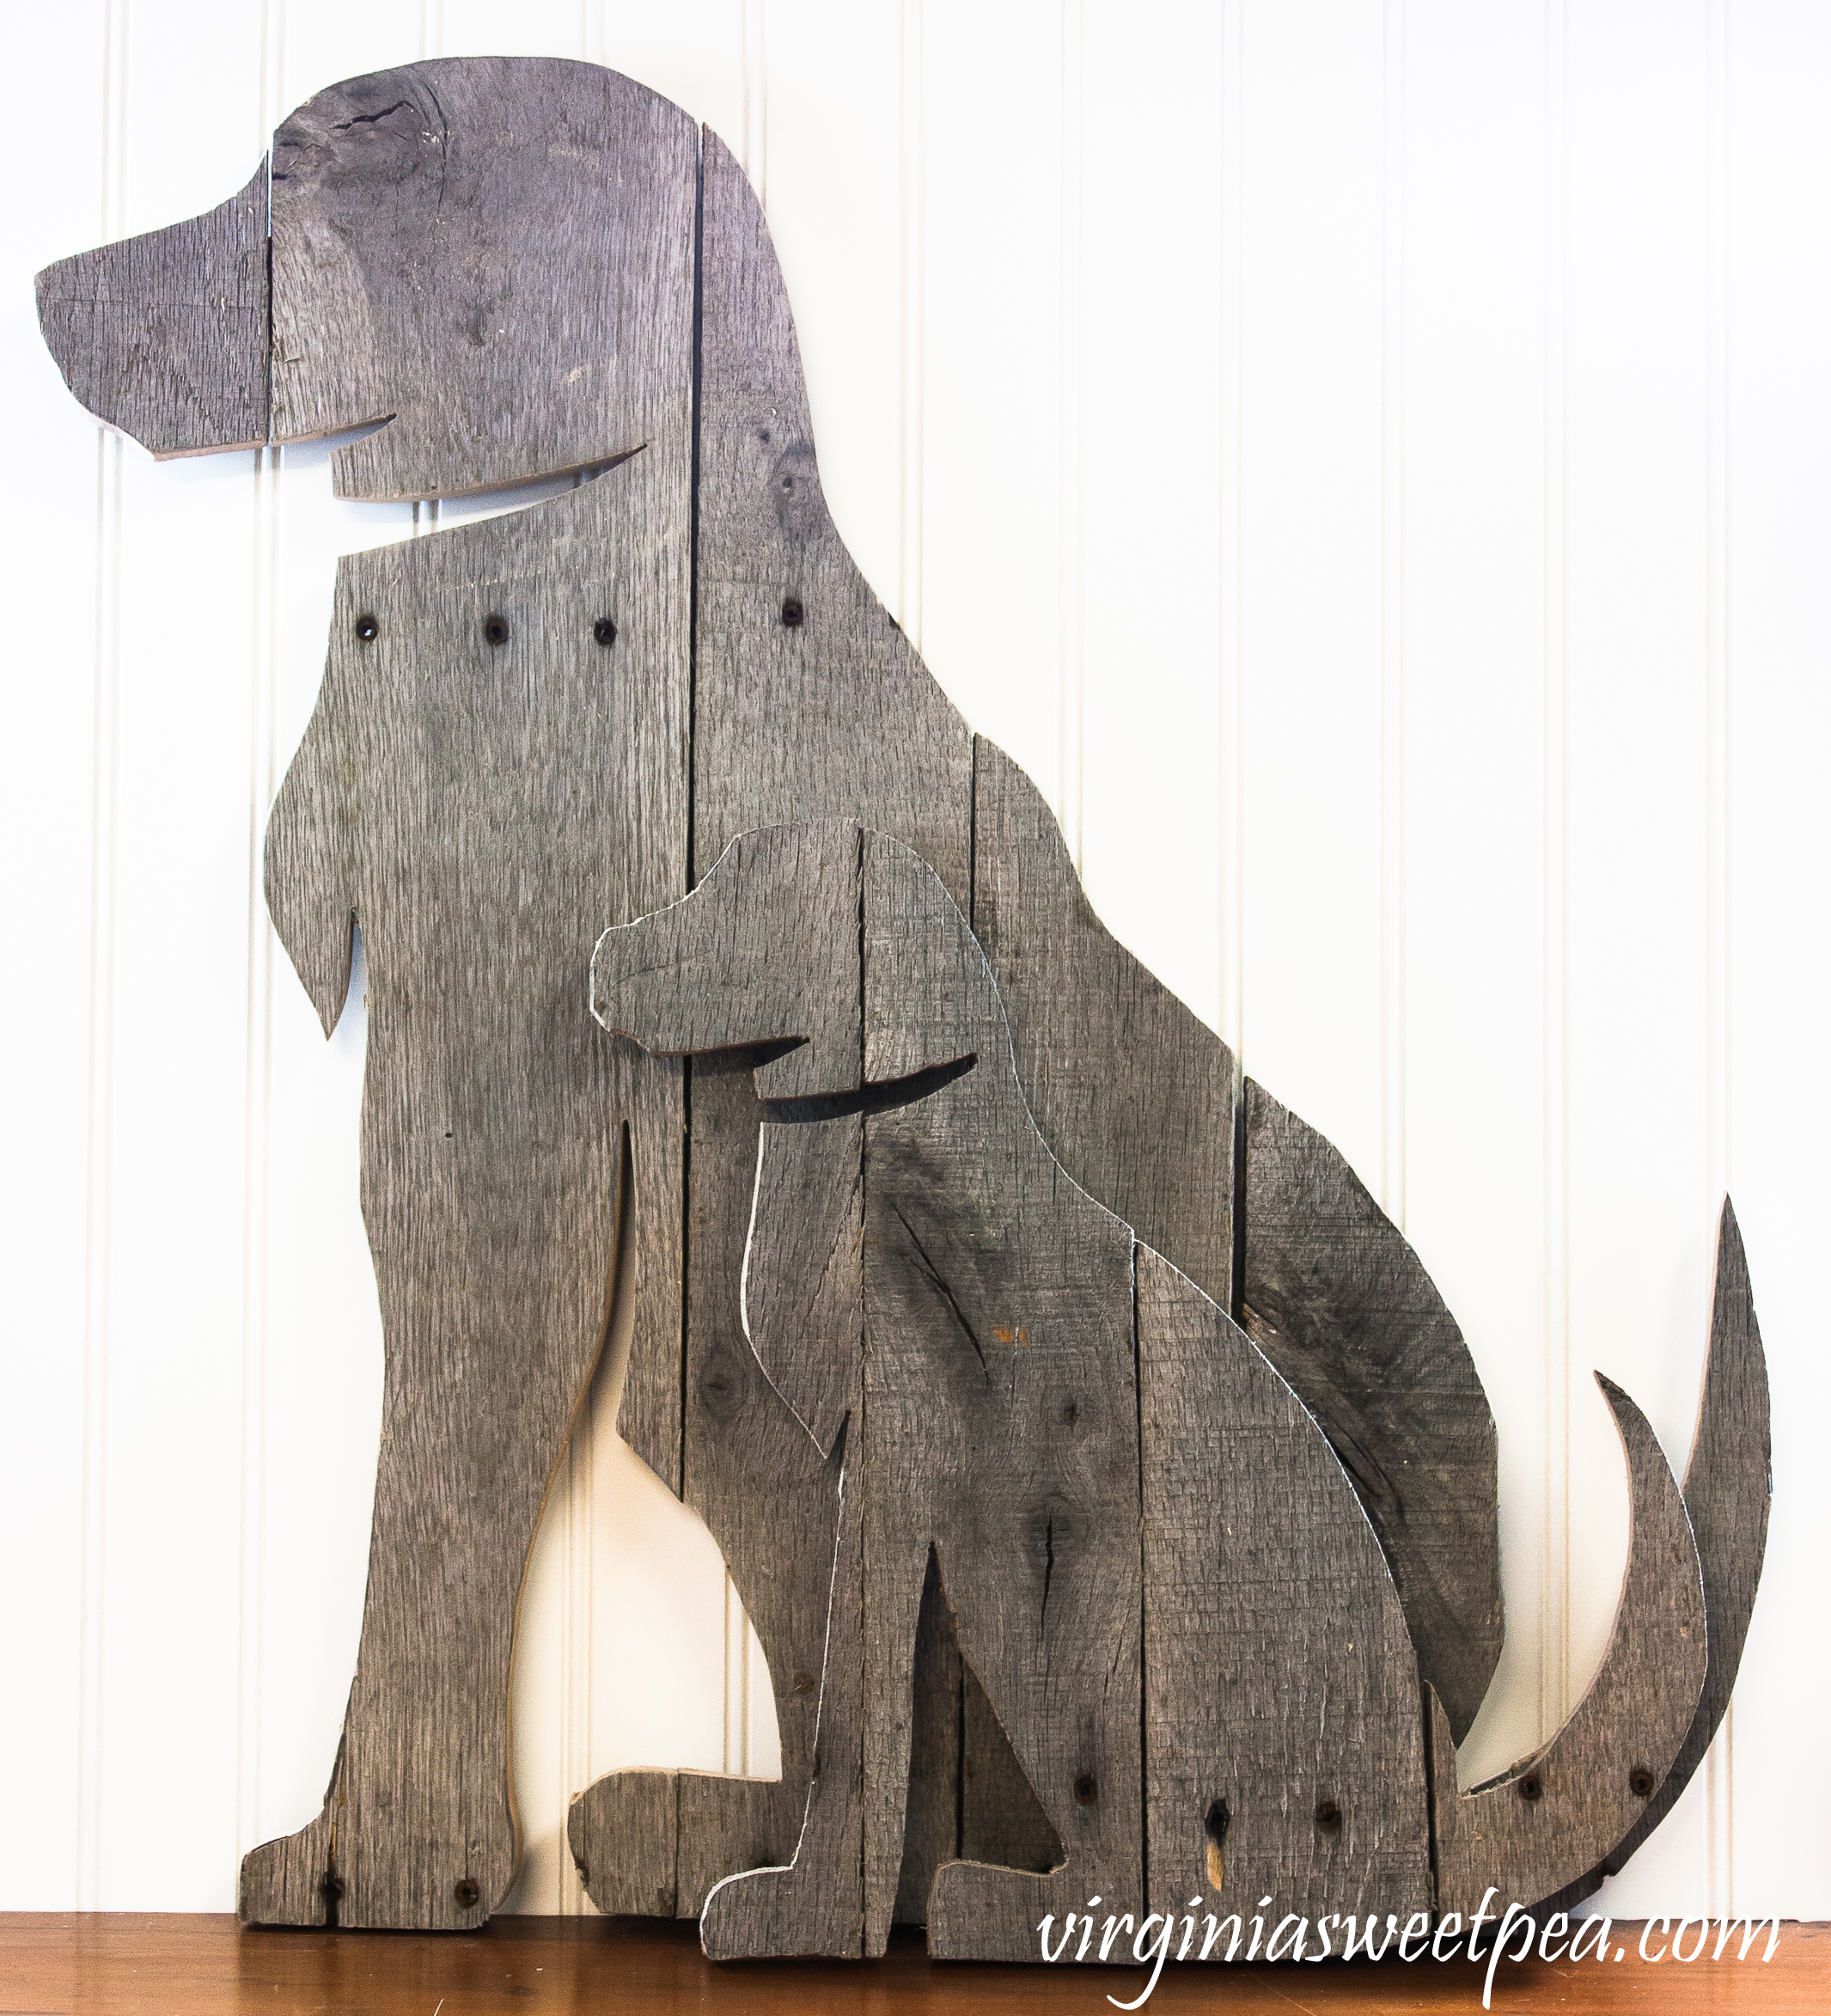 How to Make a DIY Pallet Wood Dog - Follow these step-by-step directions to make a pallet wood dog for your home or as a gift.